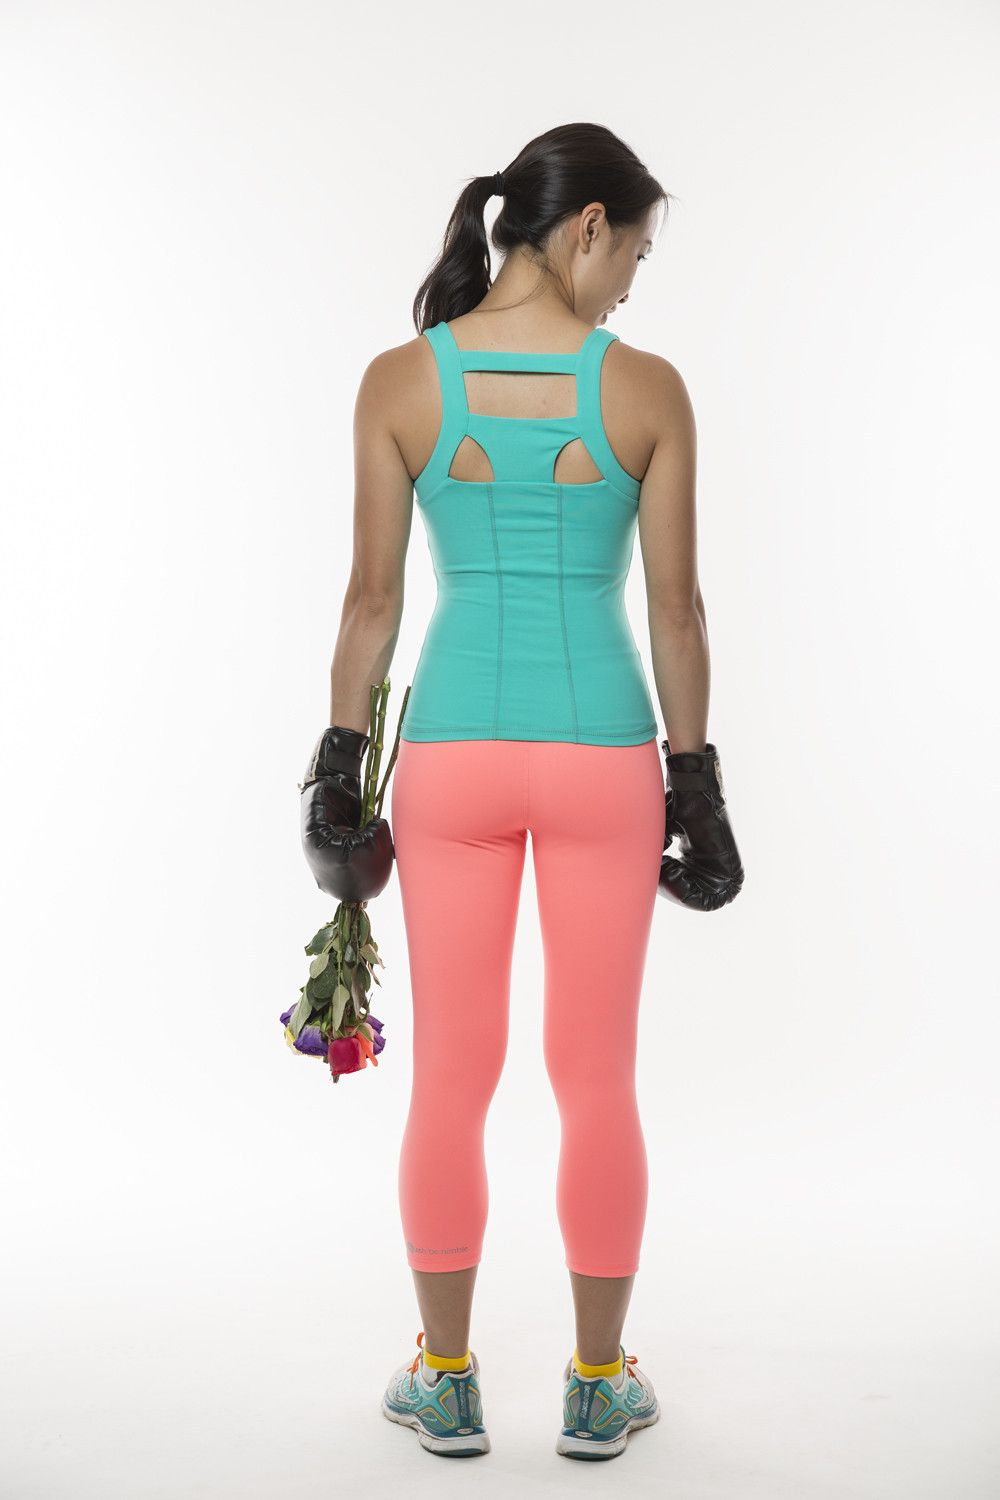 Don't-Tell Teal Support Singlet.  Need the support but hate wearing two layers of sports bra and top? Shhhh… don't tell them you're only wearing one!   This support singlet comes with a built in shelf bra!